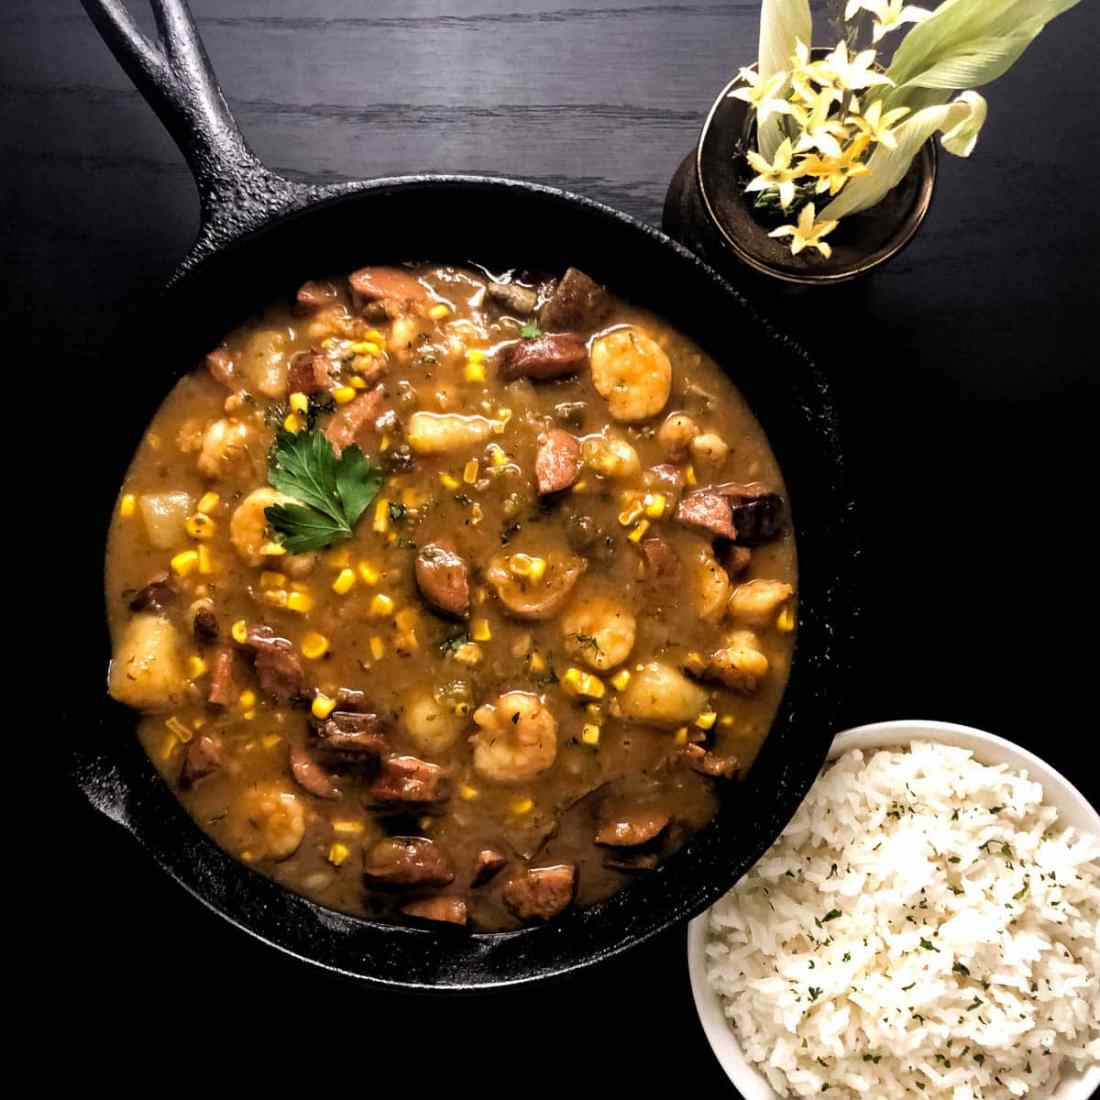 A black cast iron skillet filled with Gluten Free Cajun Shrimp, Corn Maque Choux and Sausage Stew